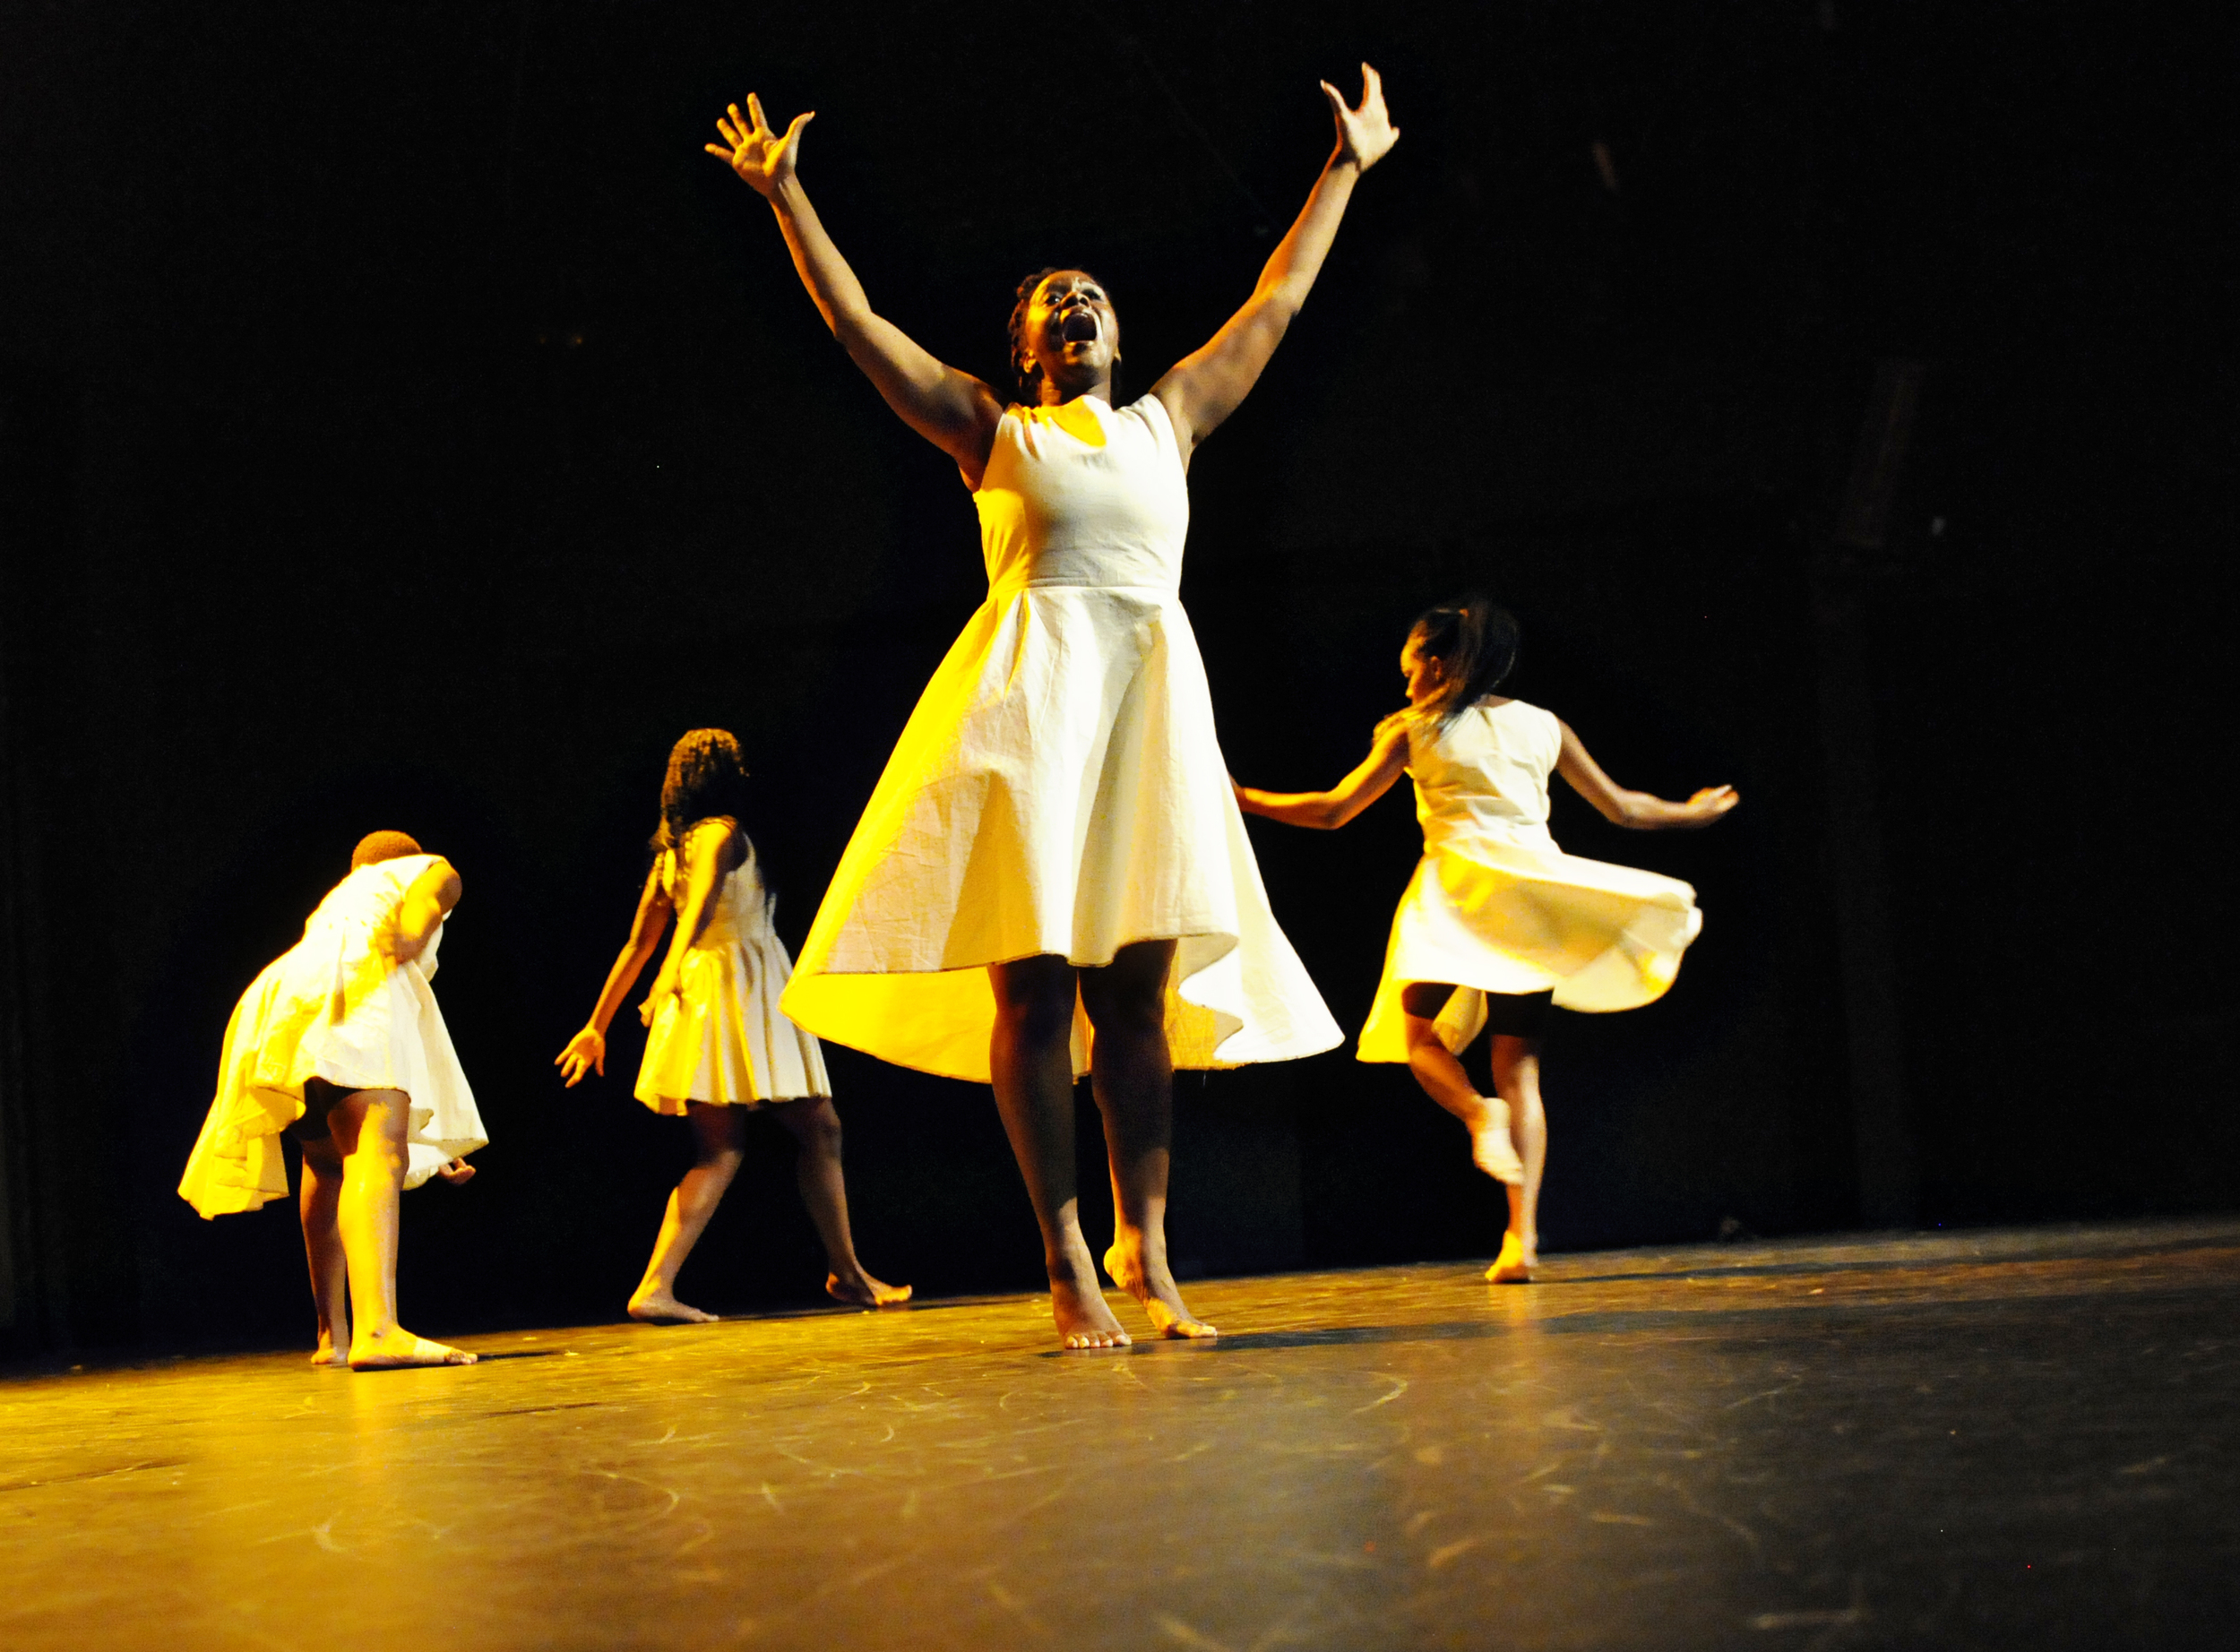 TroubleFree (2012)  Dancers: Anika Marcelle, Jillene Forde, Tracey Lucas, Jonatha Sutherland and Zhané George Dance Show: COCO Dance Festival 2012 Photography: Karen Johnstone  Location: Little Carib Theatre, Port-of-Spain - Trinidad